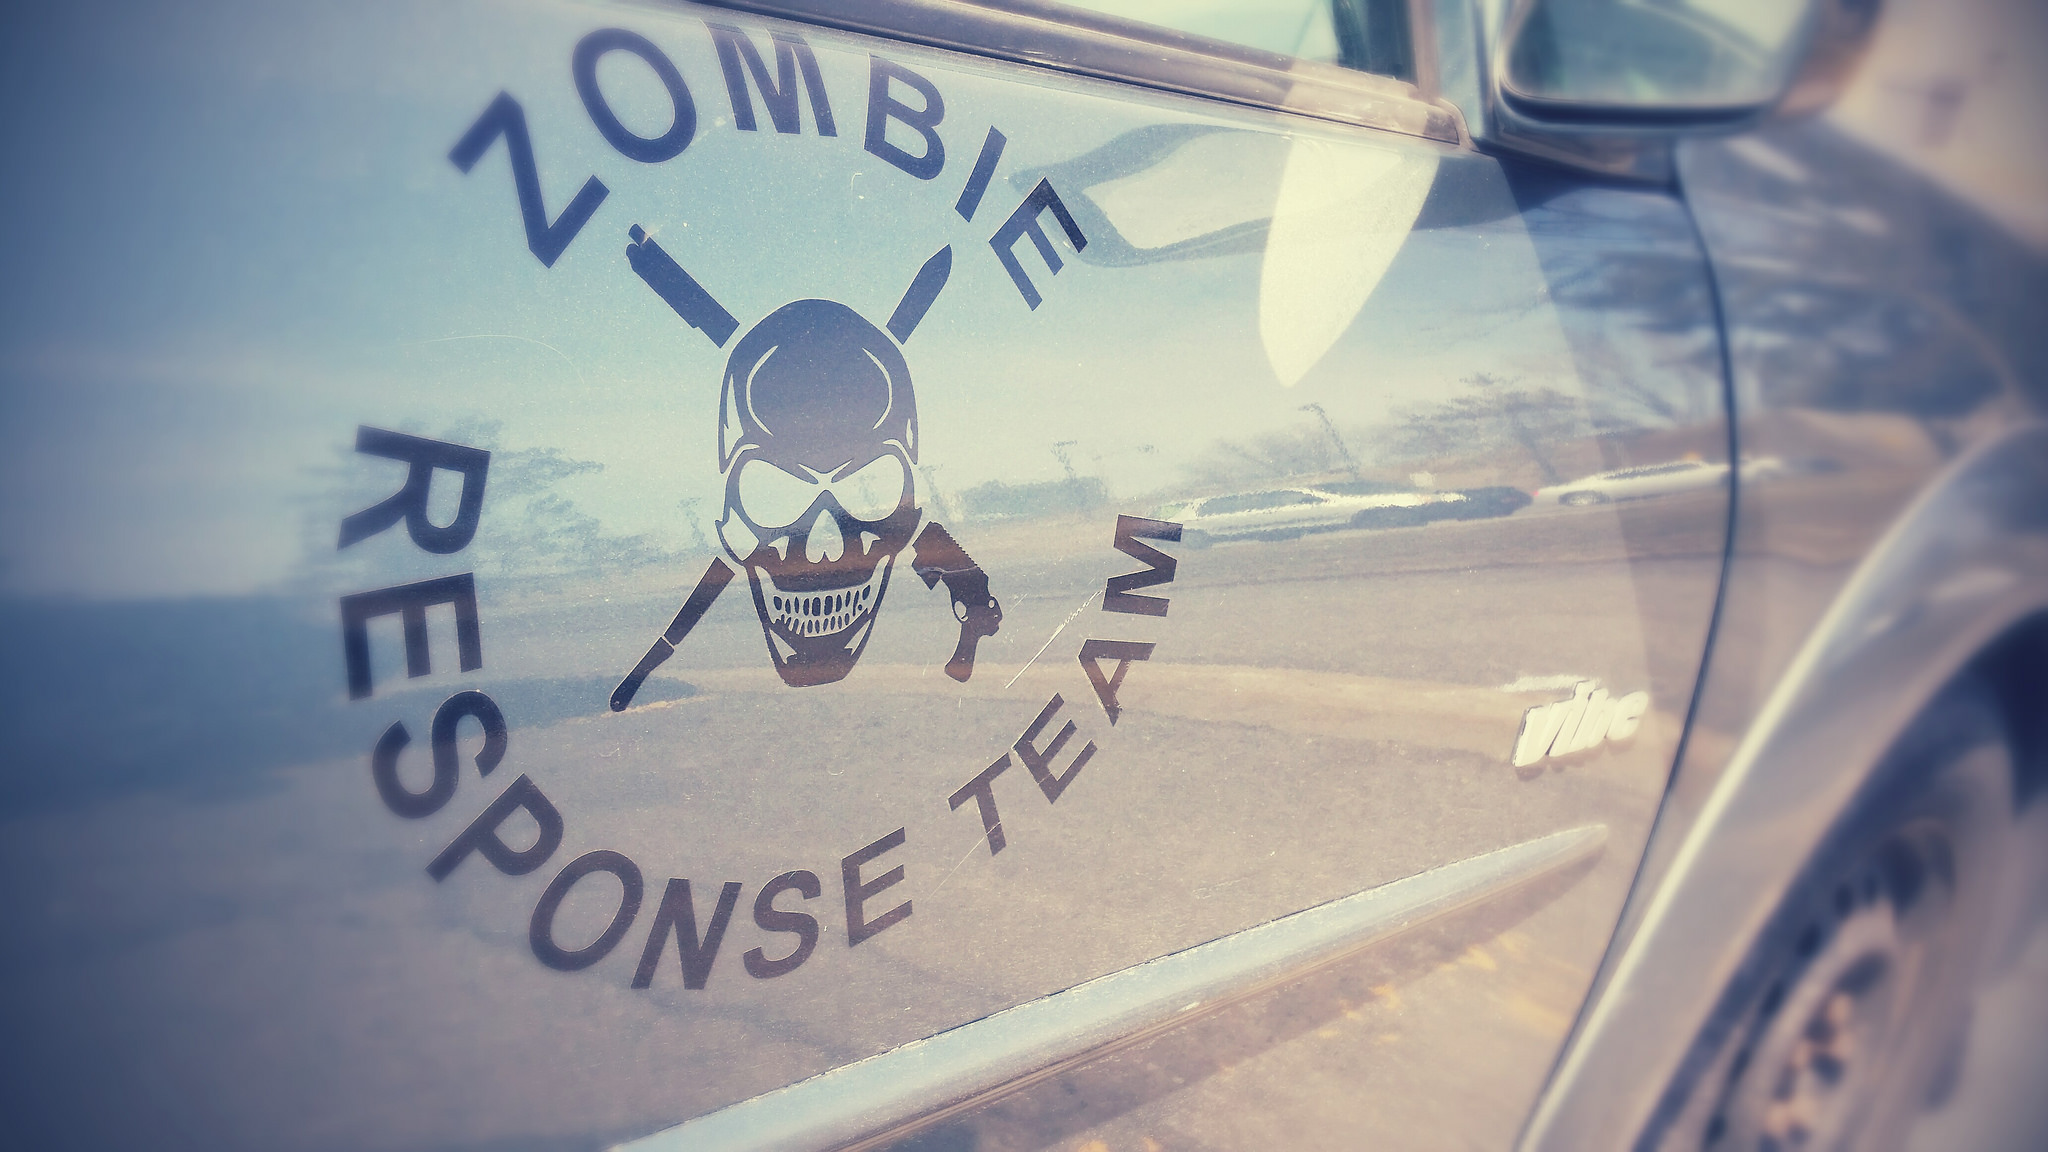 files/images/2015-12-01-zombie.jpg